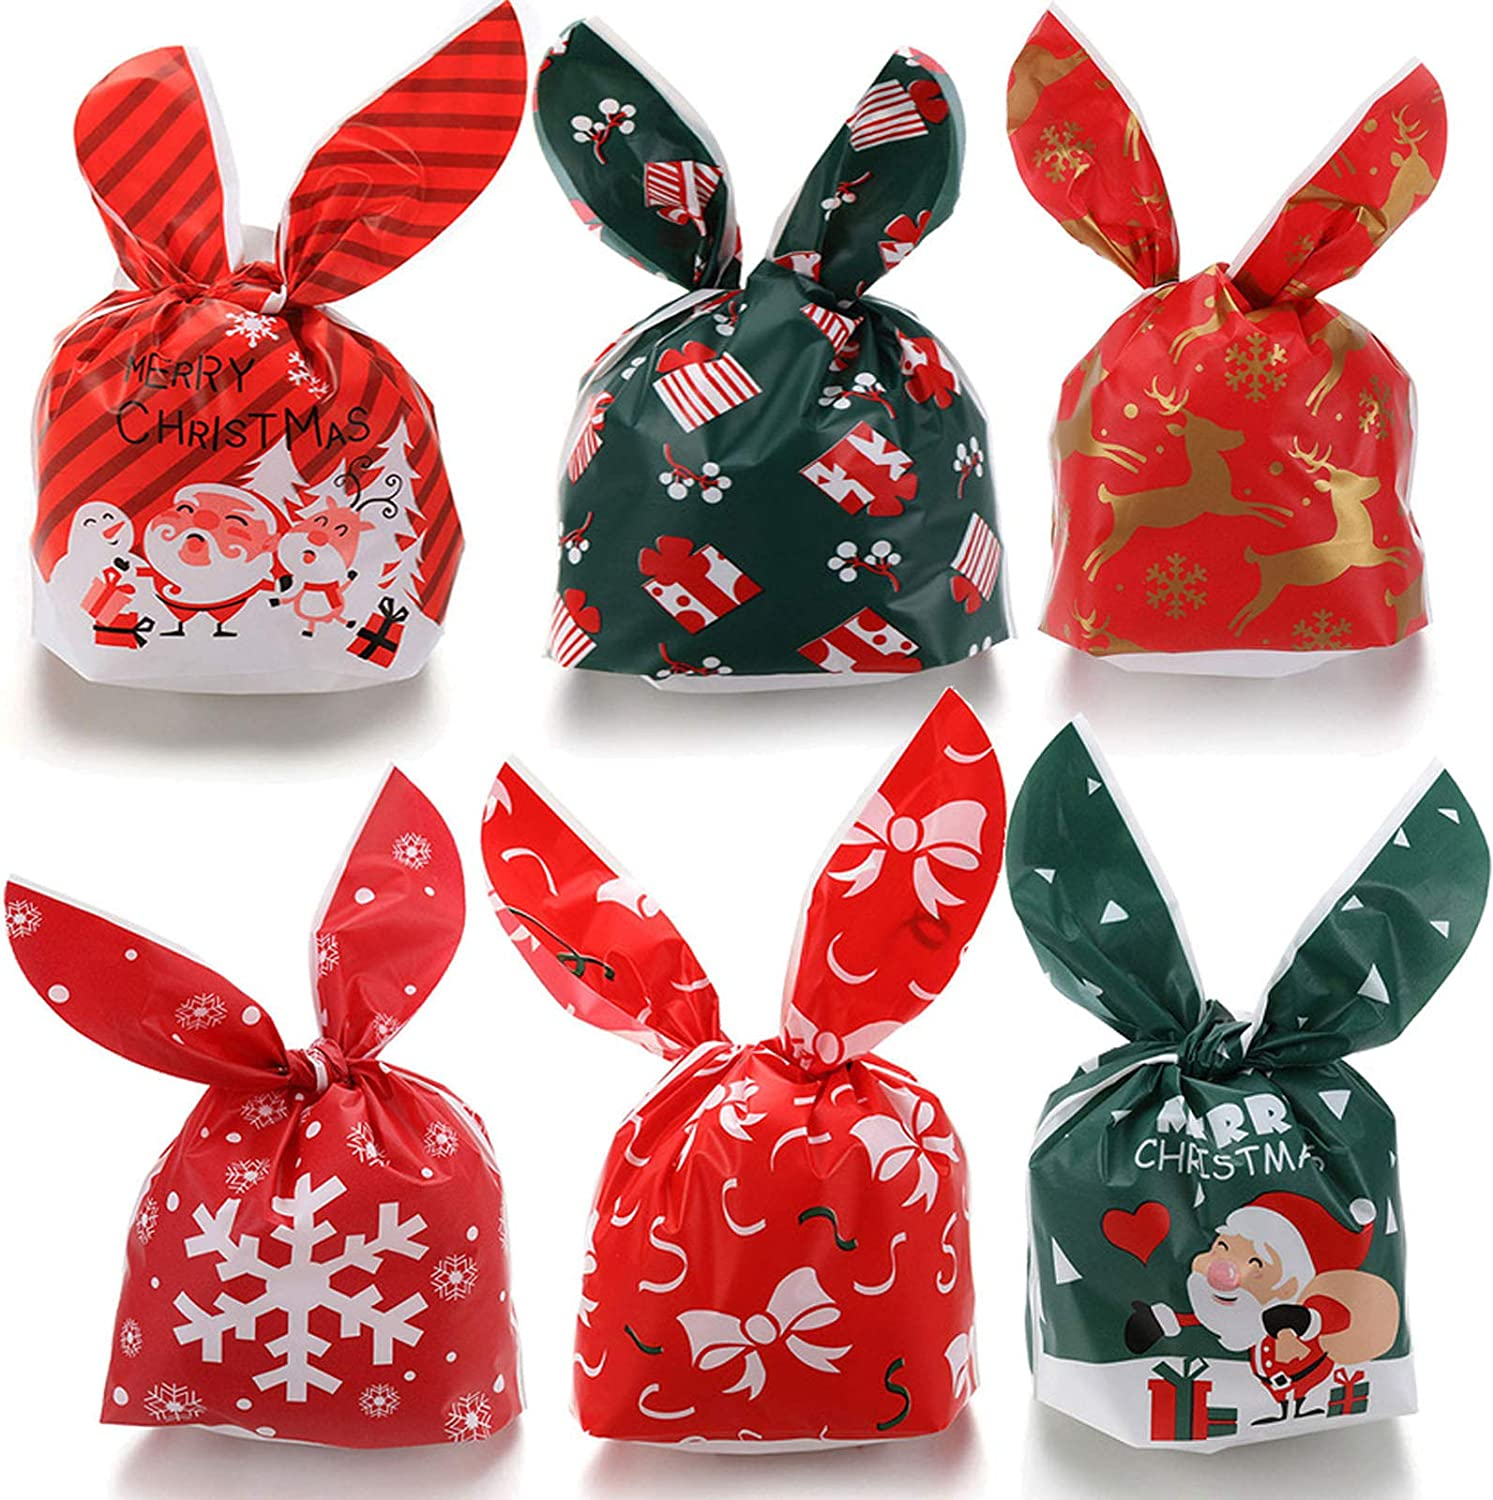 60 Pcs Christmas Candy Bags Party Bags Kids Trick Or Treat Bags Rabbit Goody Bags Christmas Party Gift Favors,Kids Christmas Party Supplies